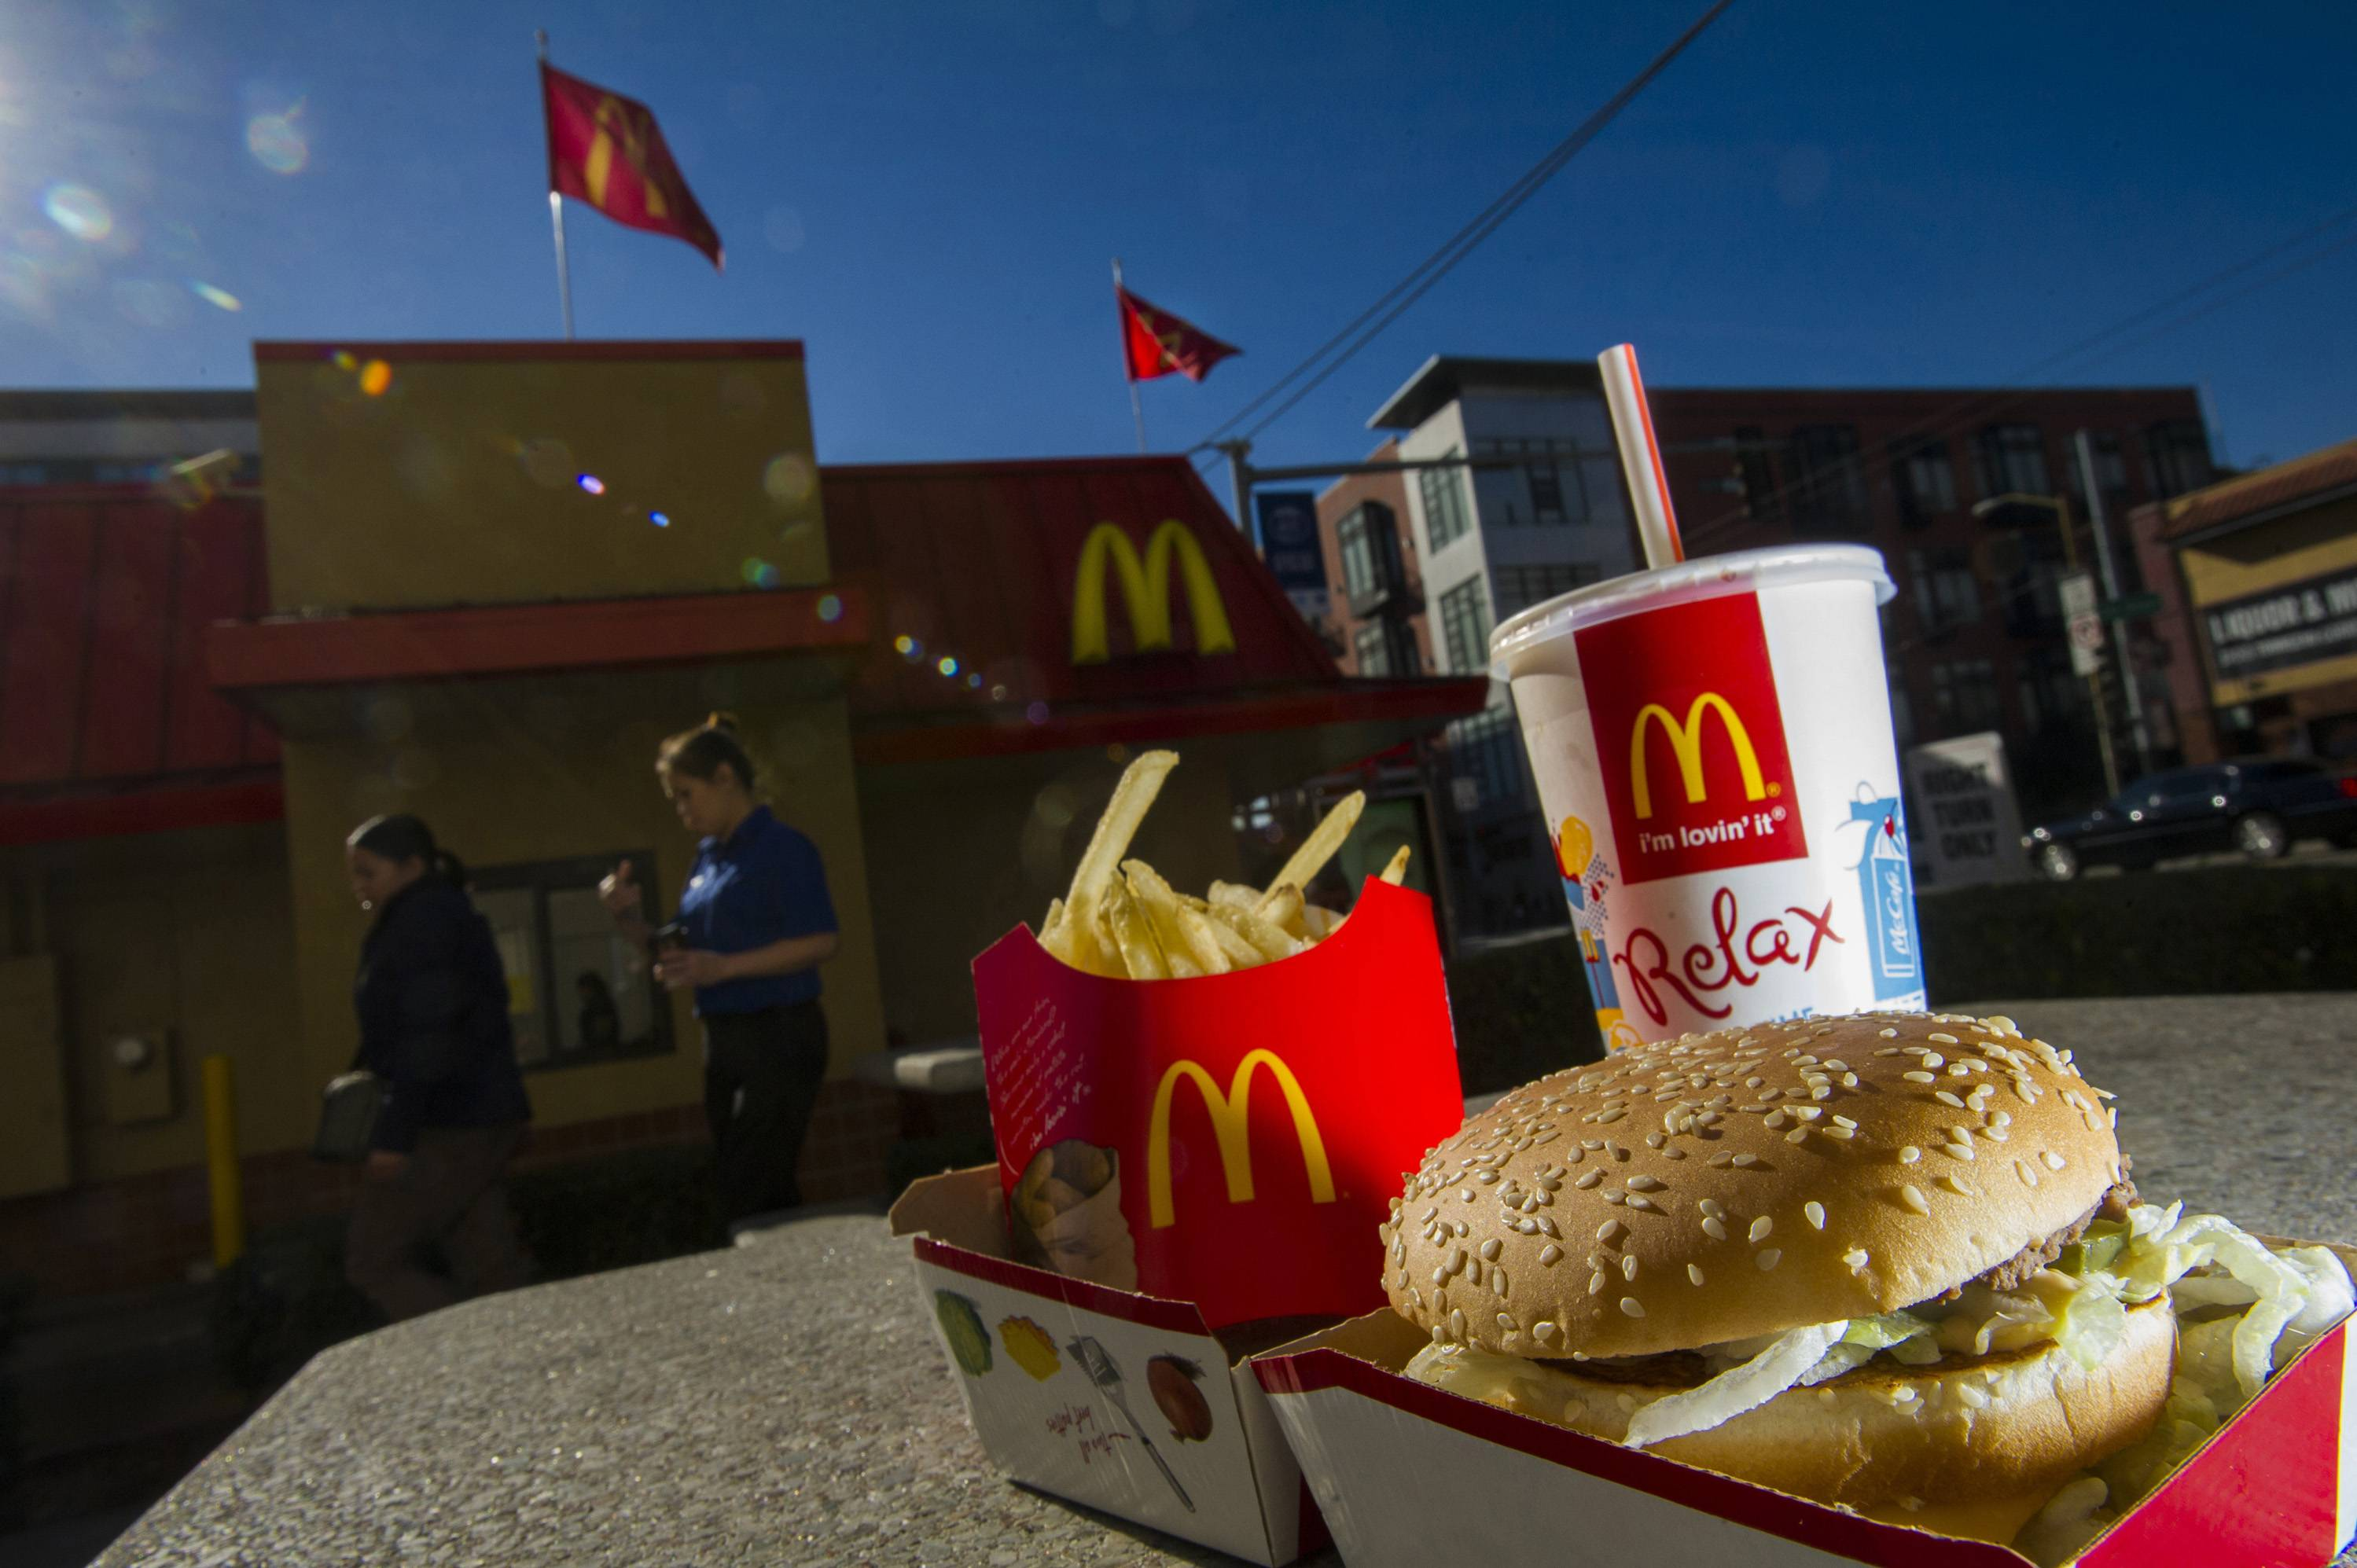 McDonald's Corp., the world's largest restaurant chain, posted fourth-quarter profit that was little changed from a year earlier as U.S. same-store sales fell amid shaky consumer confidence and increased competition.